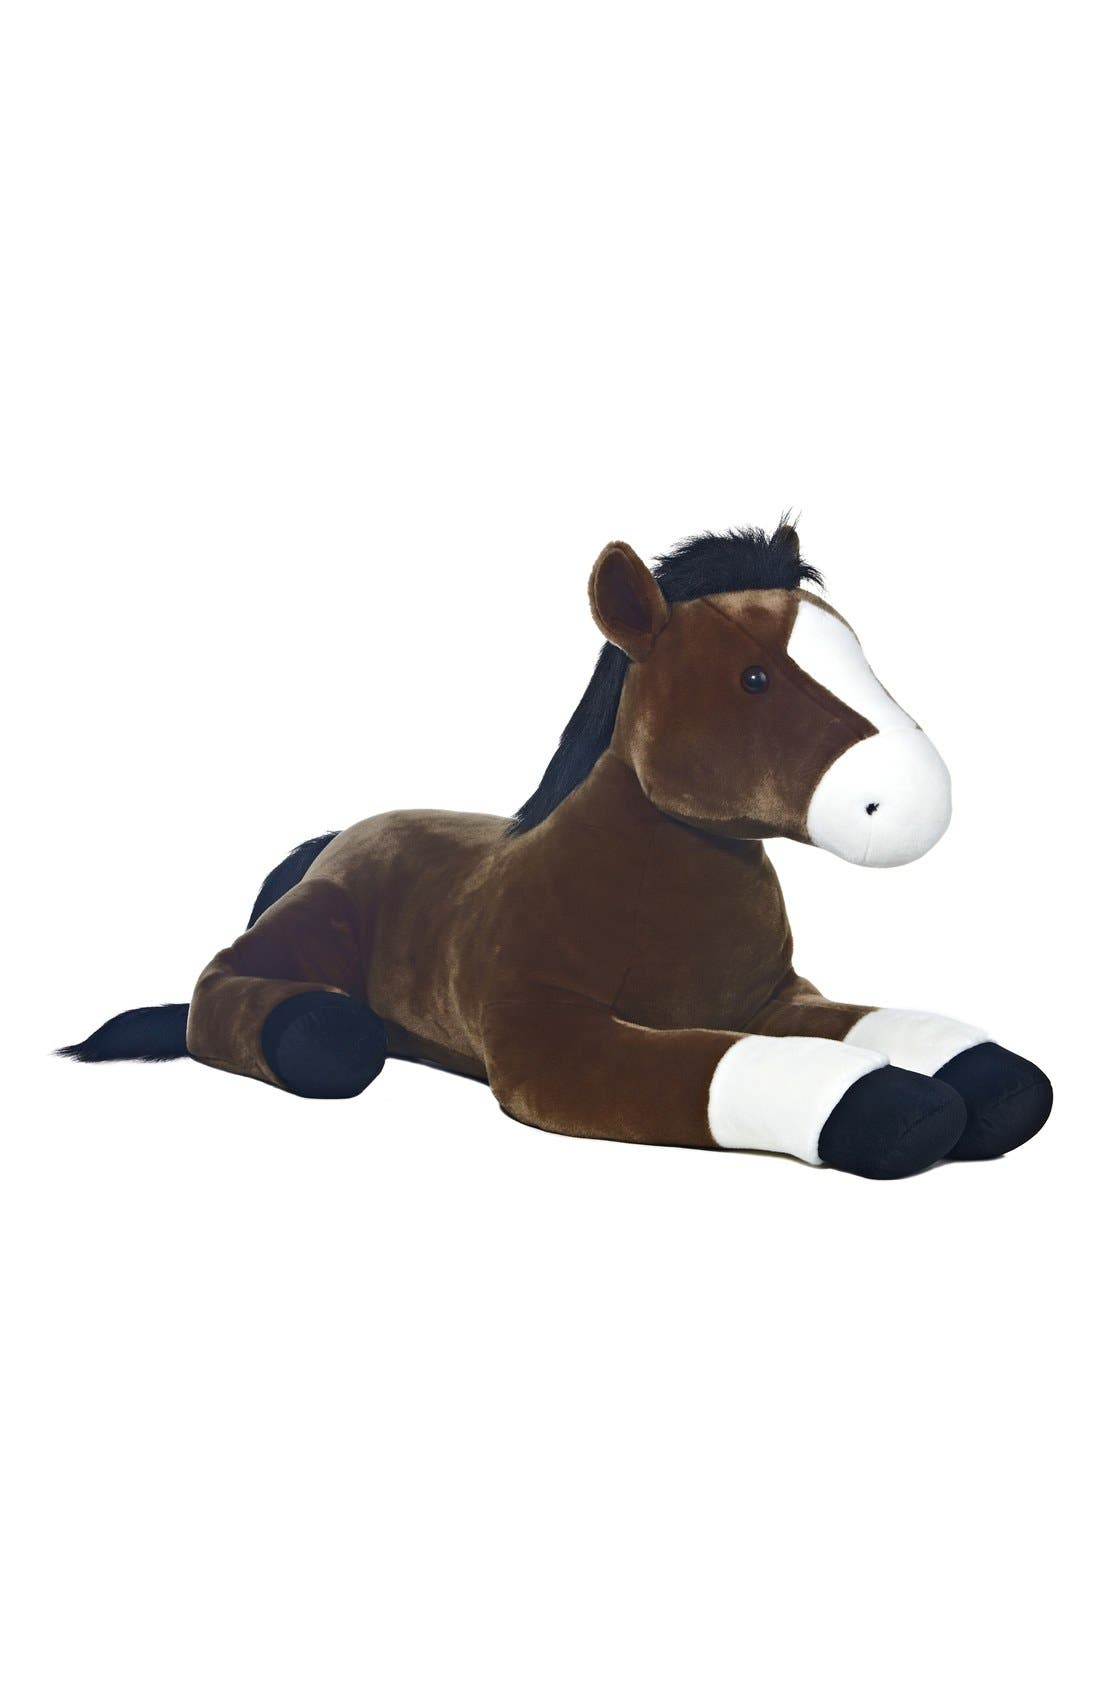 AURORA WORLD TOYS 'Legend Horse' Stuffed Animal